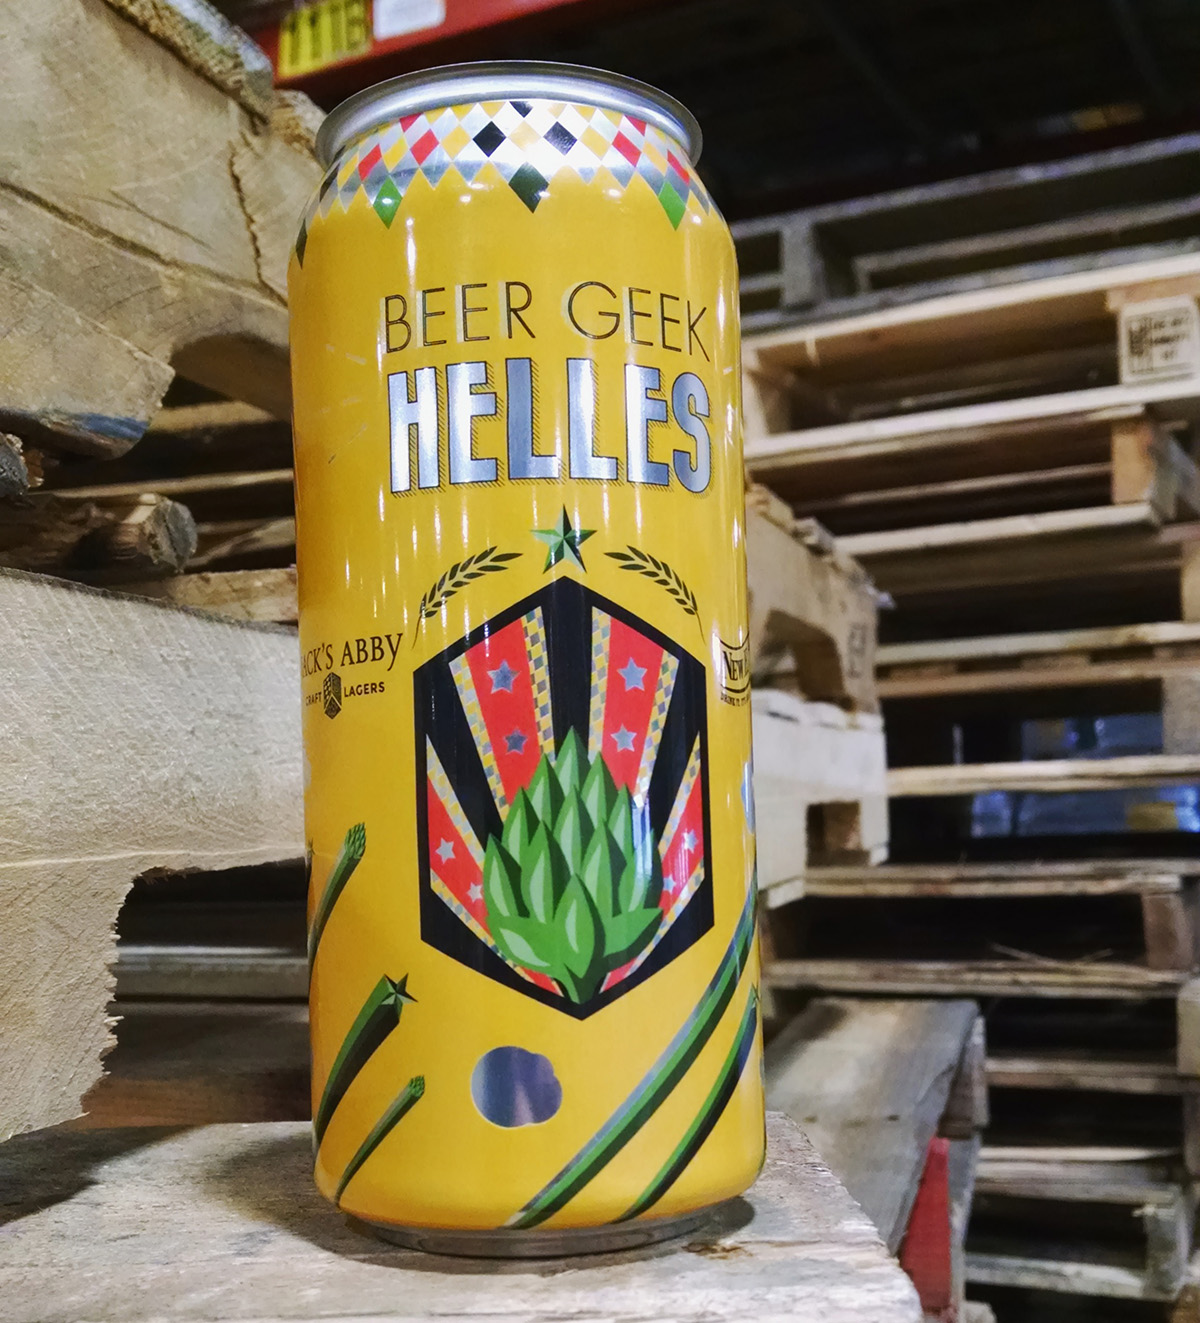 Beer Geek Helles, by Jack's Abby and New England Brewing Company. / Photo provided.